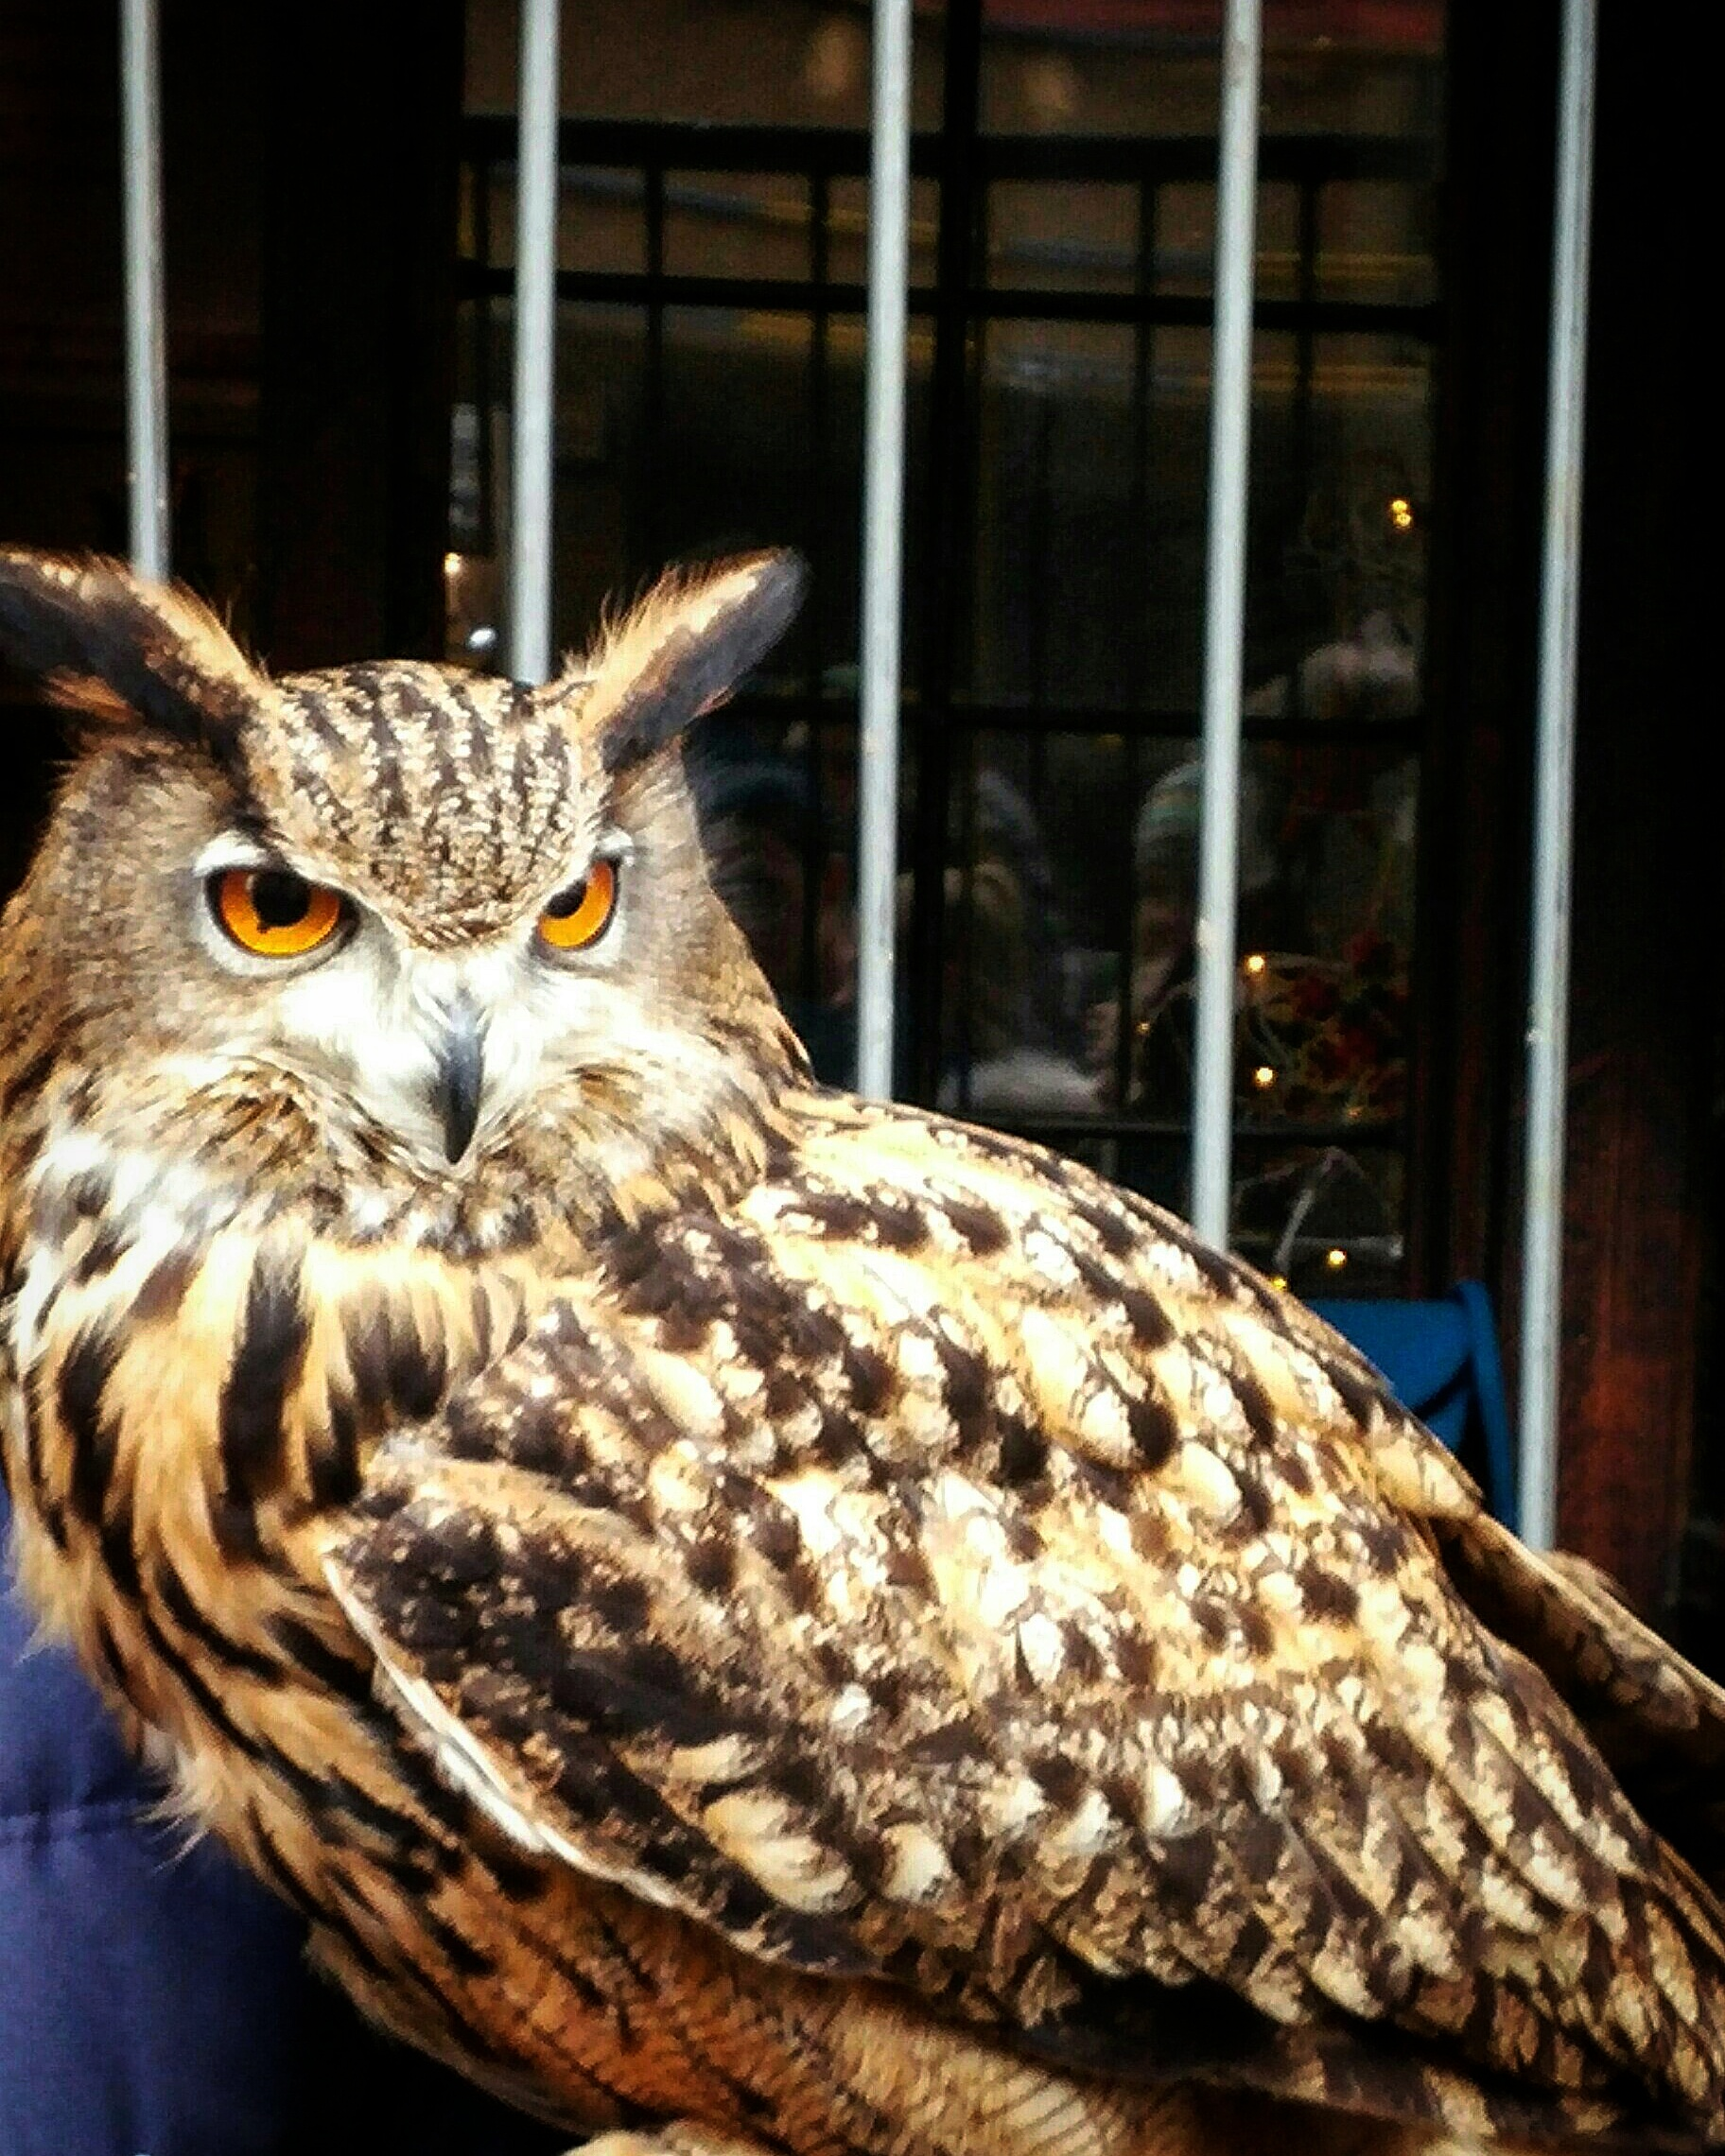 Apparently, the domestication of owls is not uncommon to the Scottish.